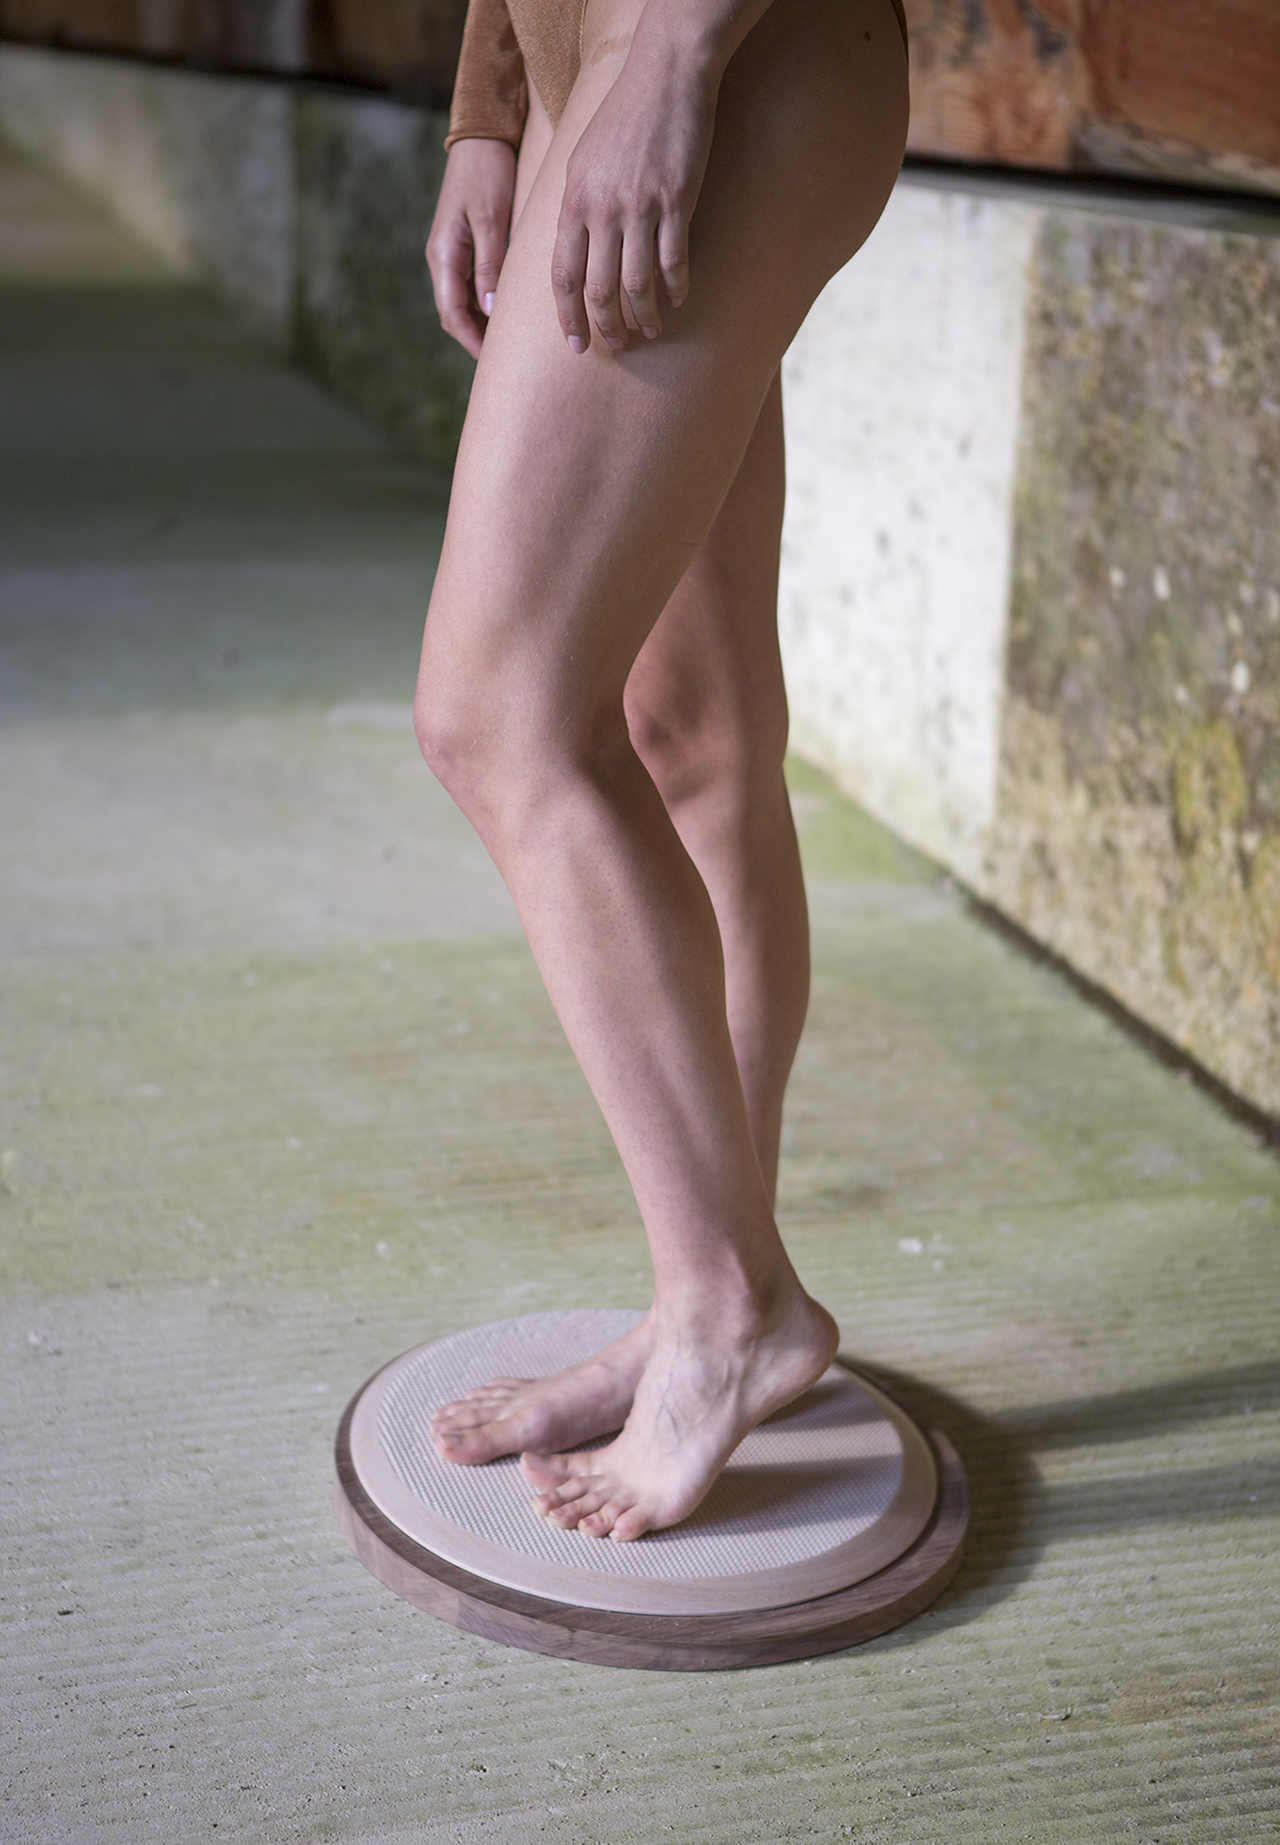 legs standing on round object